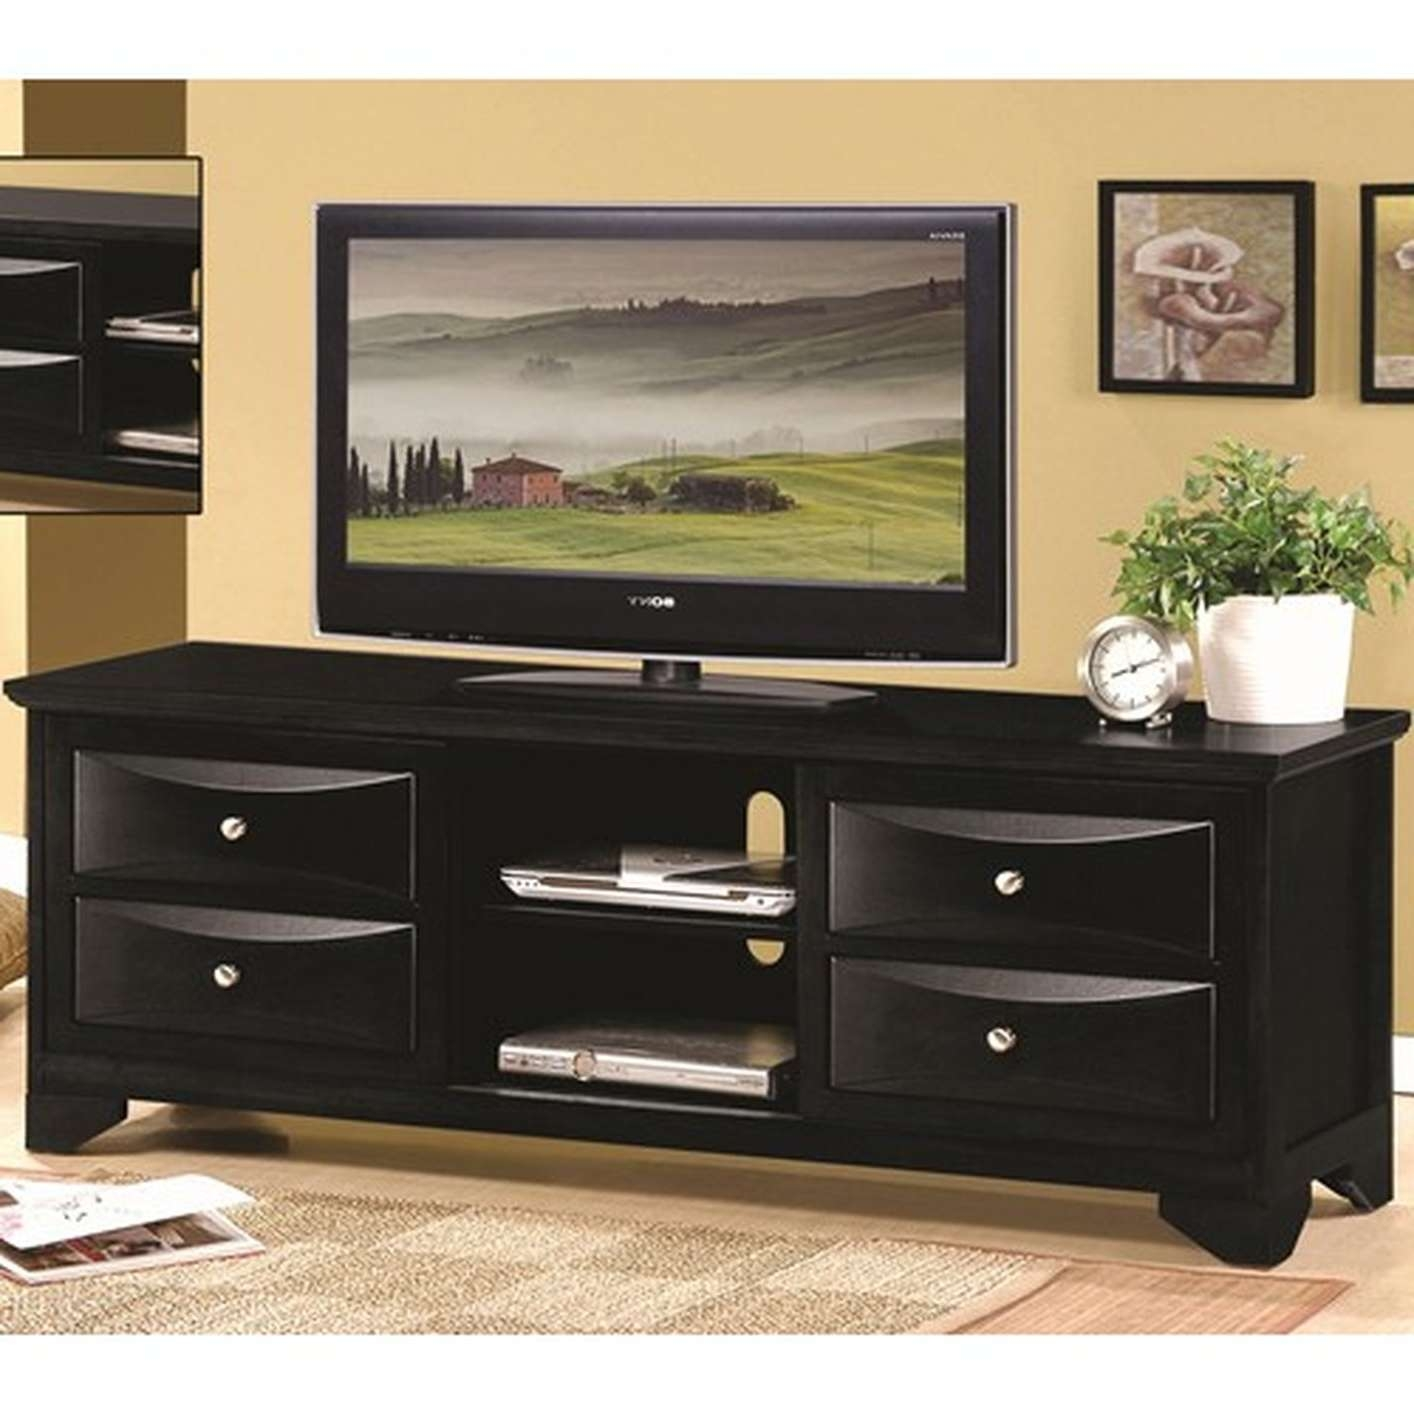 Black Wood Tv Stand – Steal A Sofa Furniture Outlet Los Angeles Ca Pertaining To Tv Stands With Drawers And Shelves (View 1 of 15)